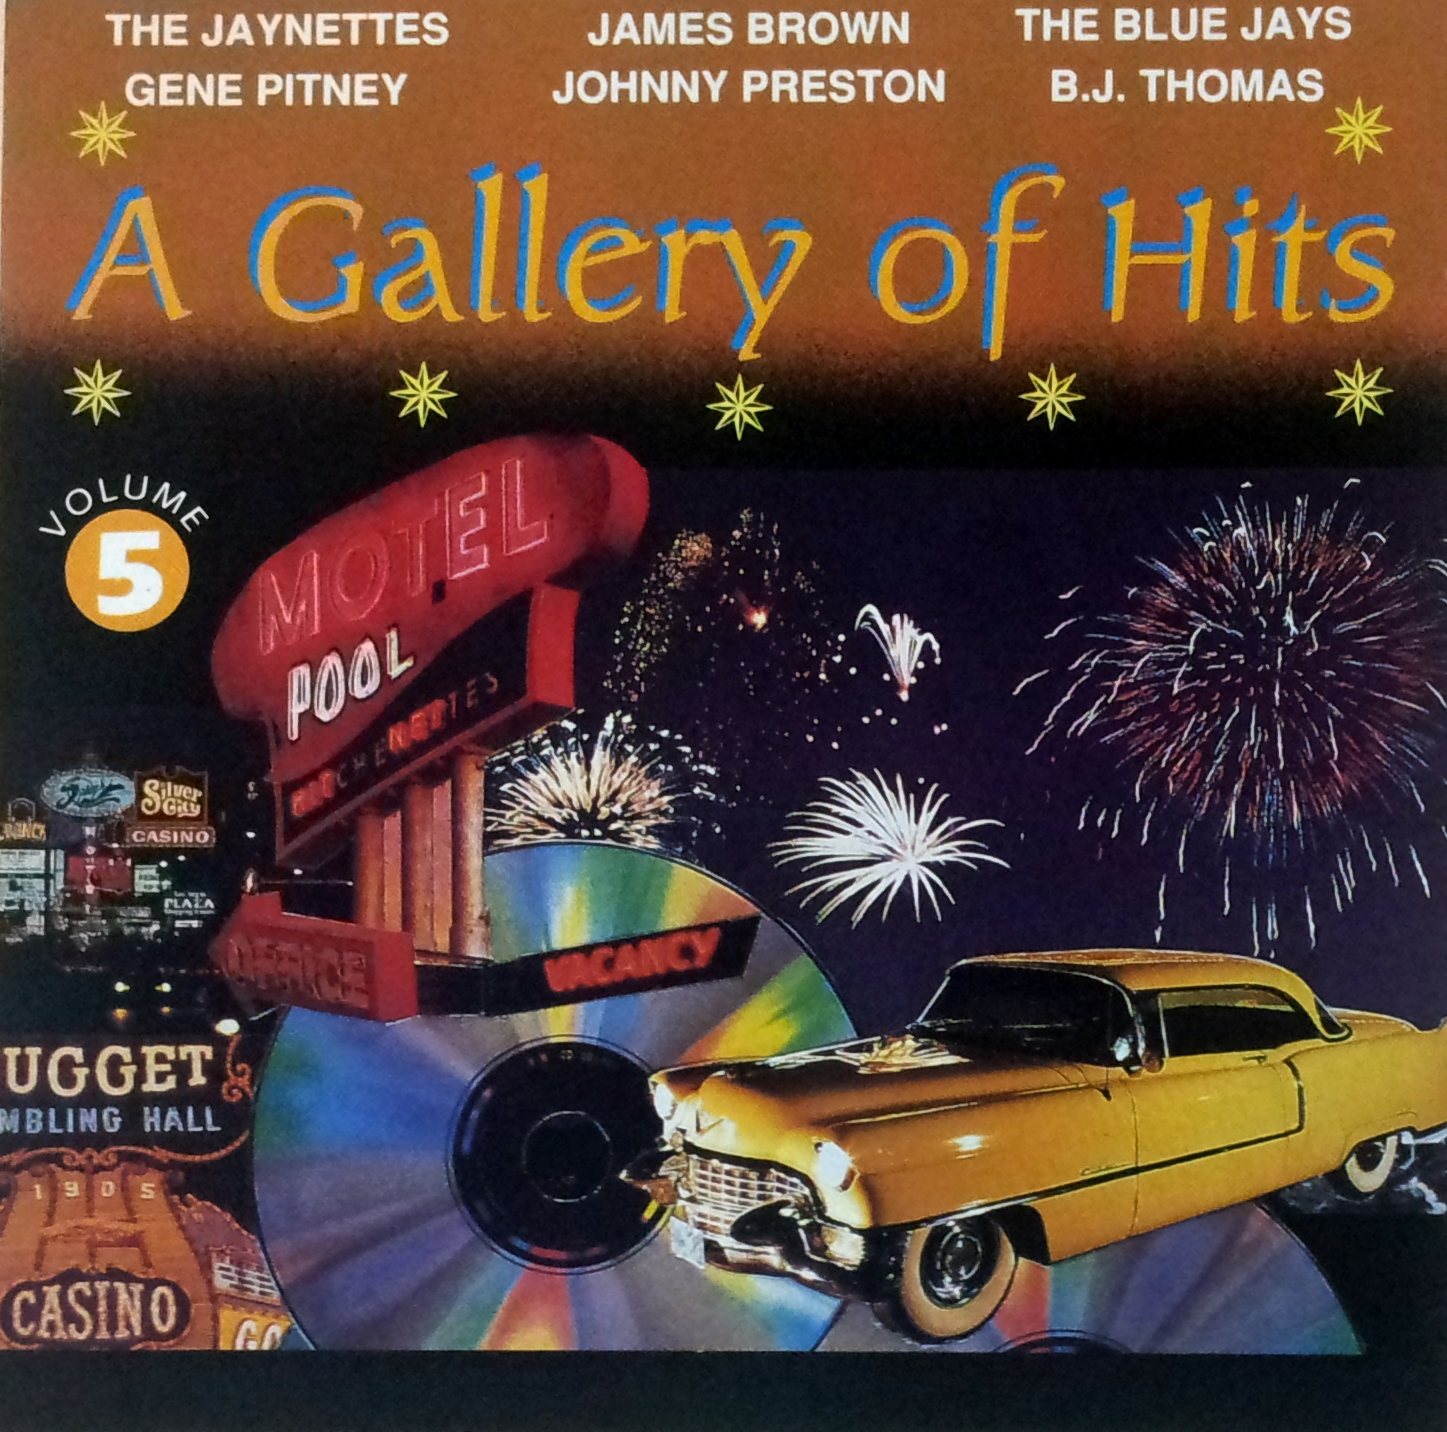 A Gallery of hits Vol. 5